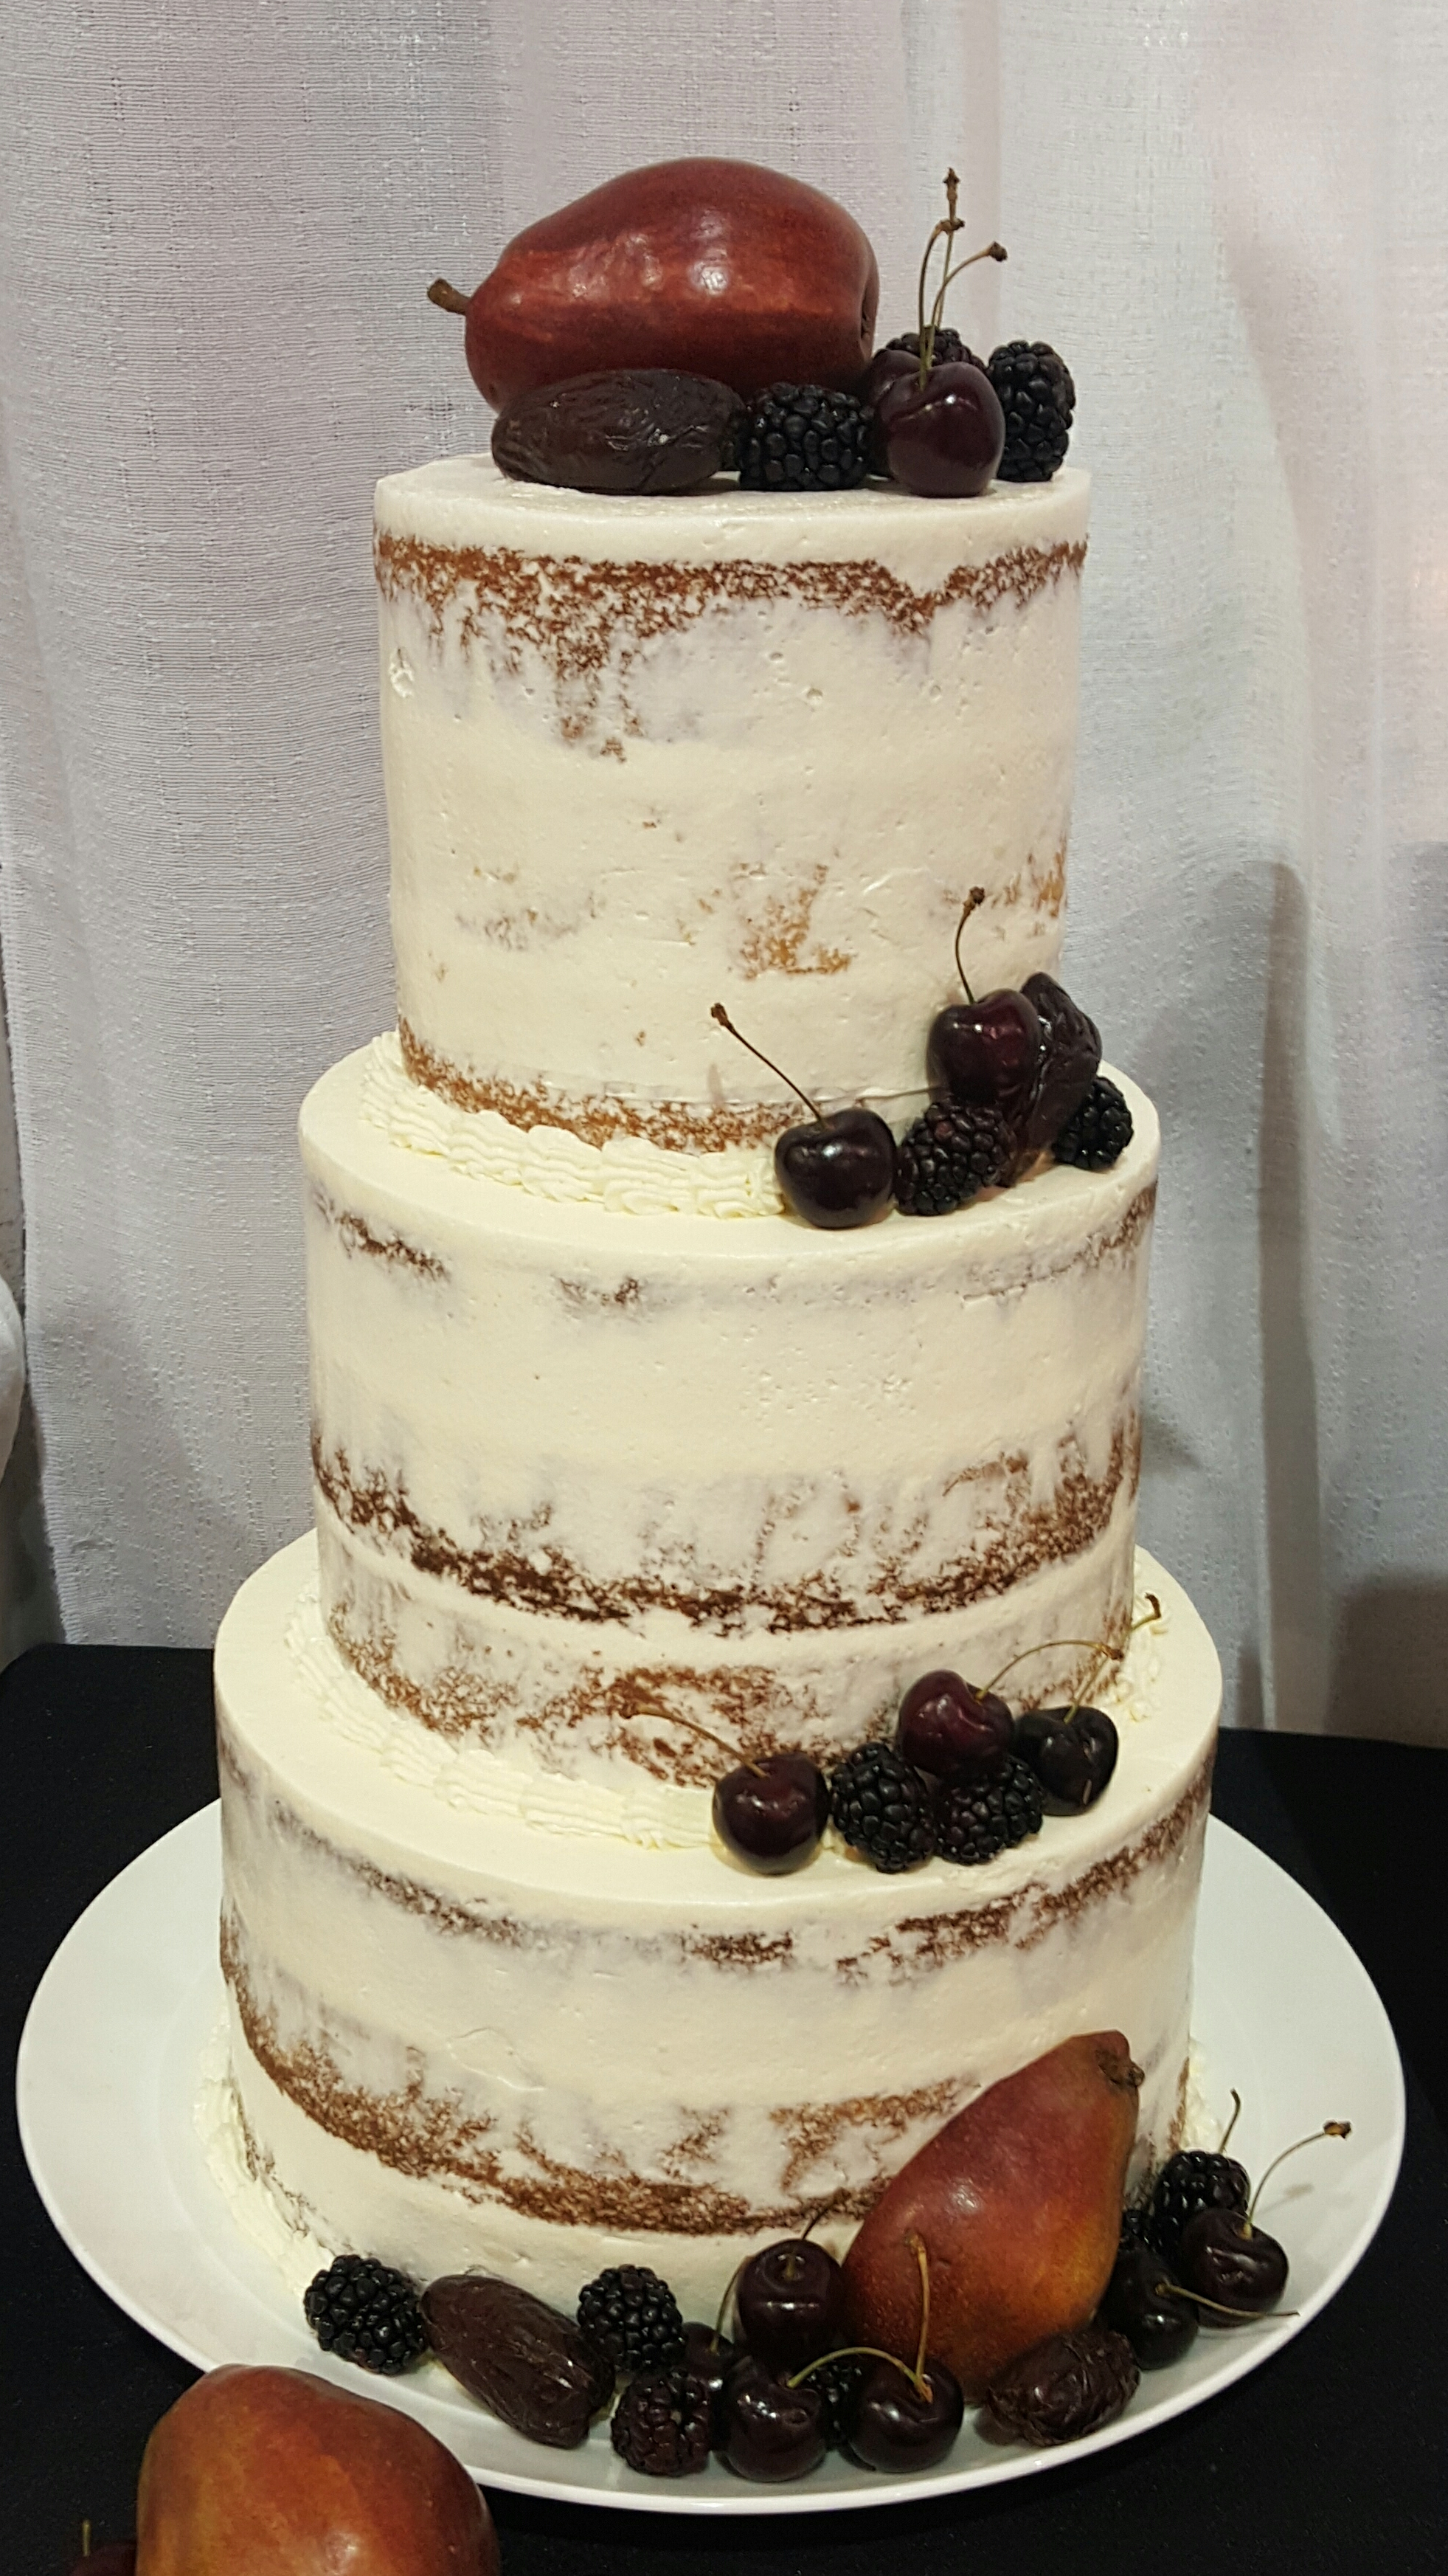 Semi-Naked cake topped with fresh cherries, blackberries, red pears and dried dates. Photo by: Sarah Blanchard Roanoke, VA